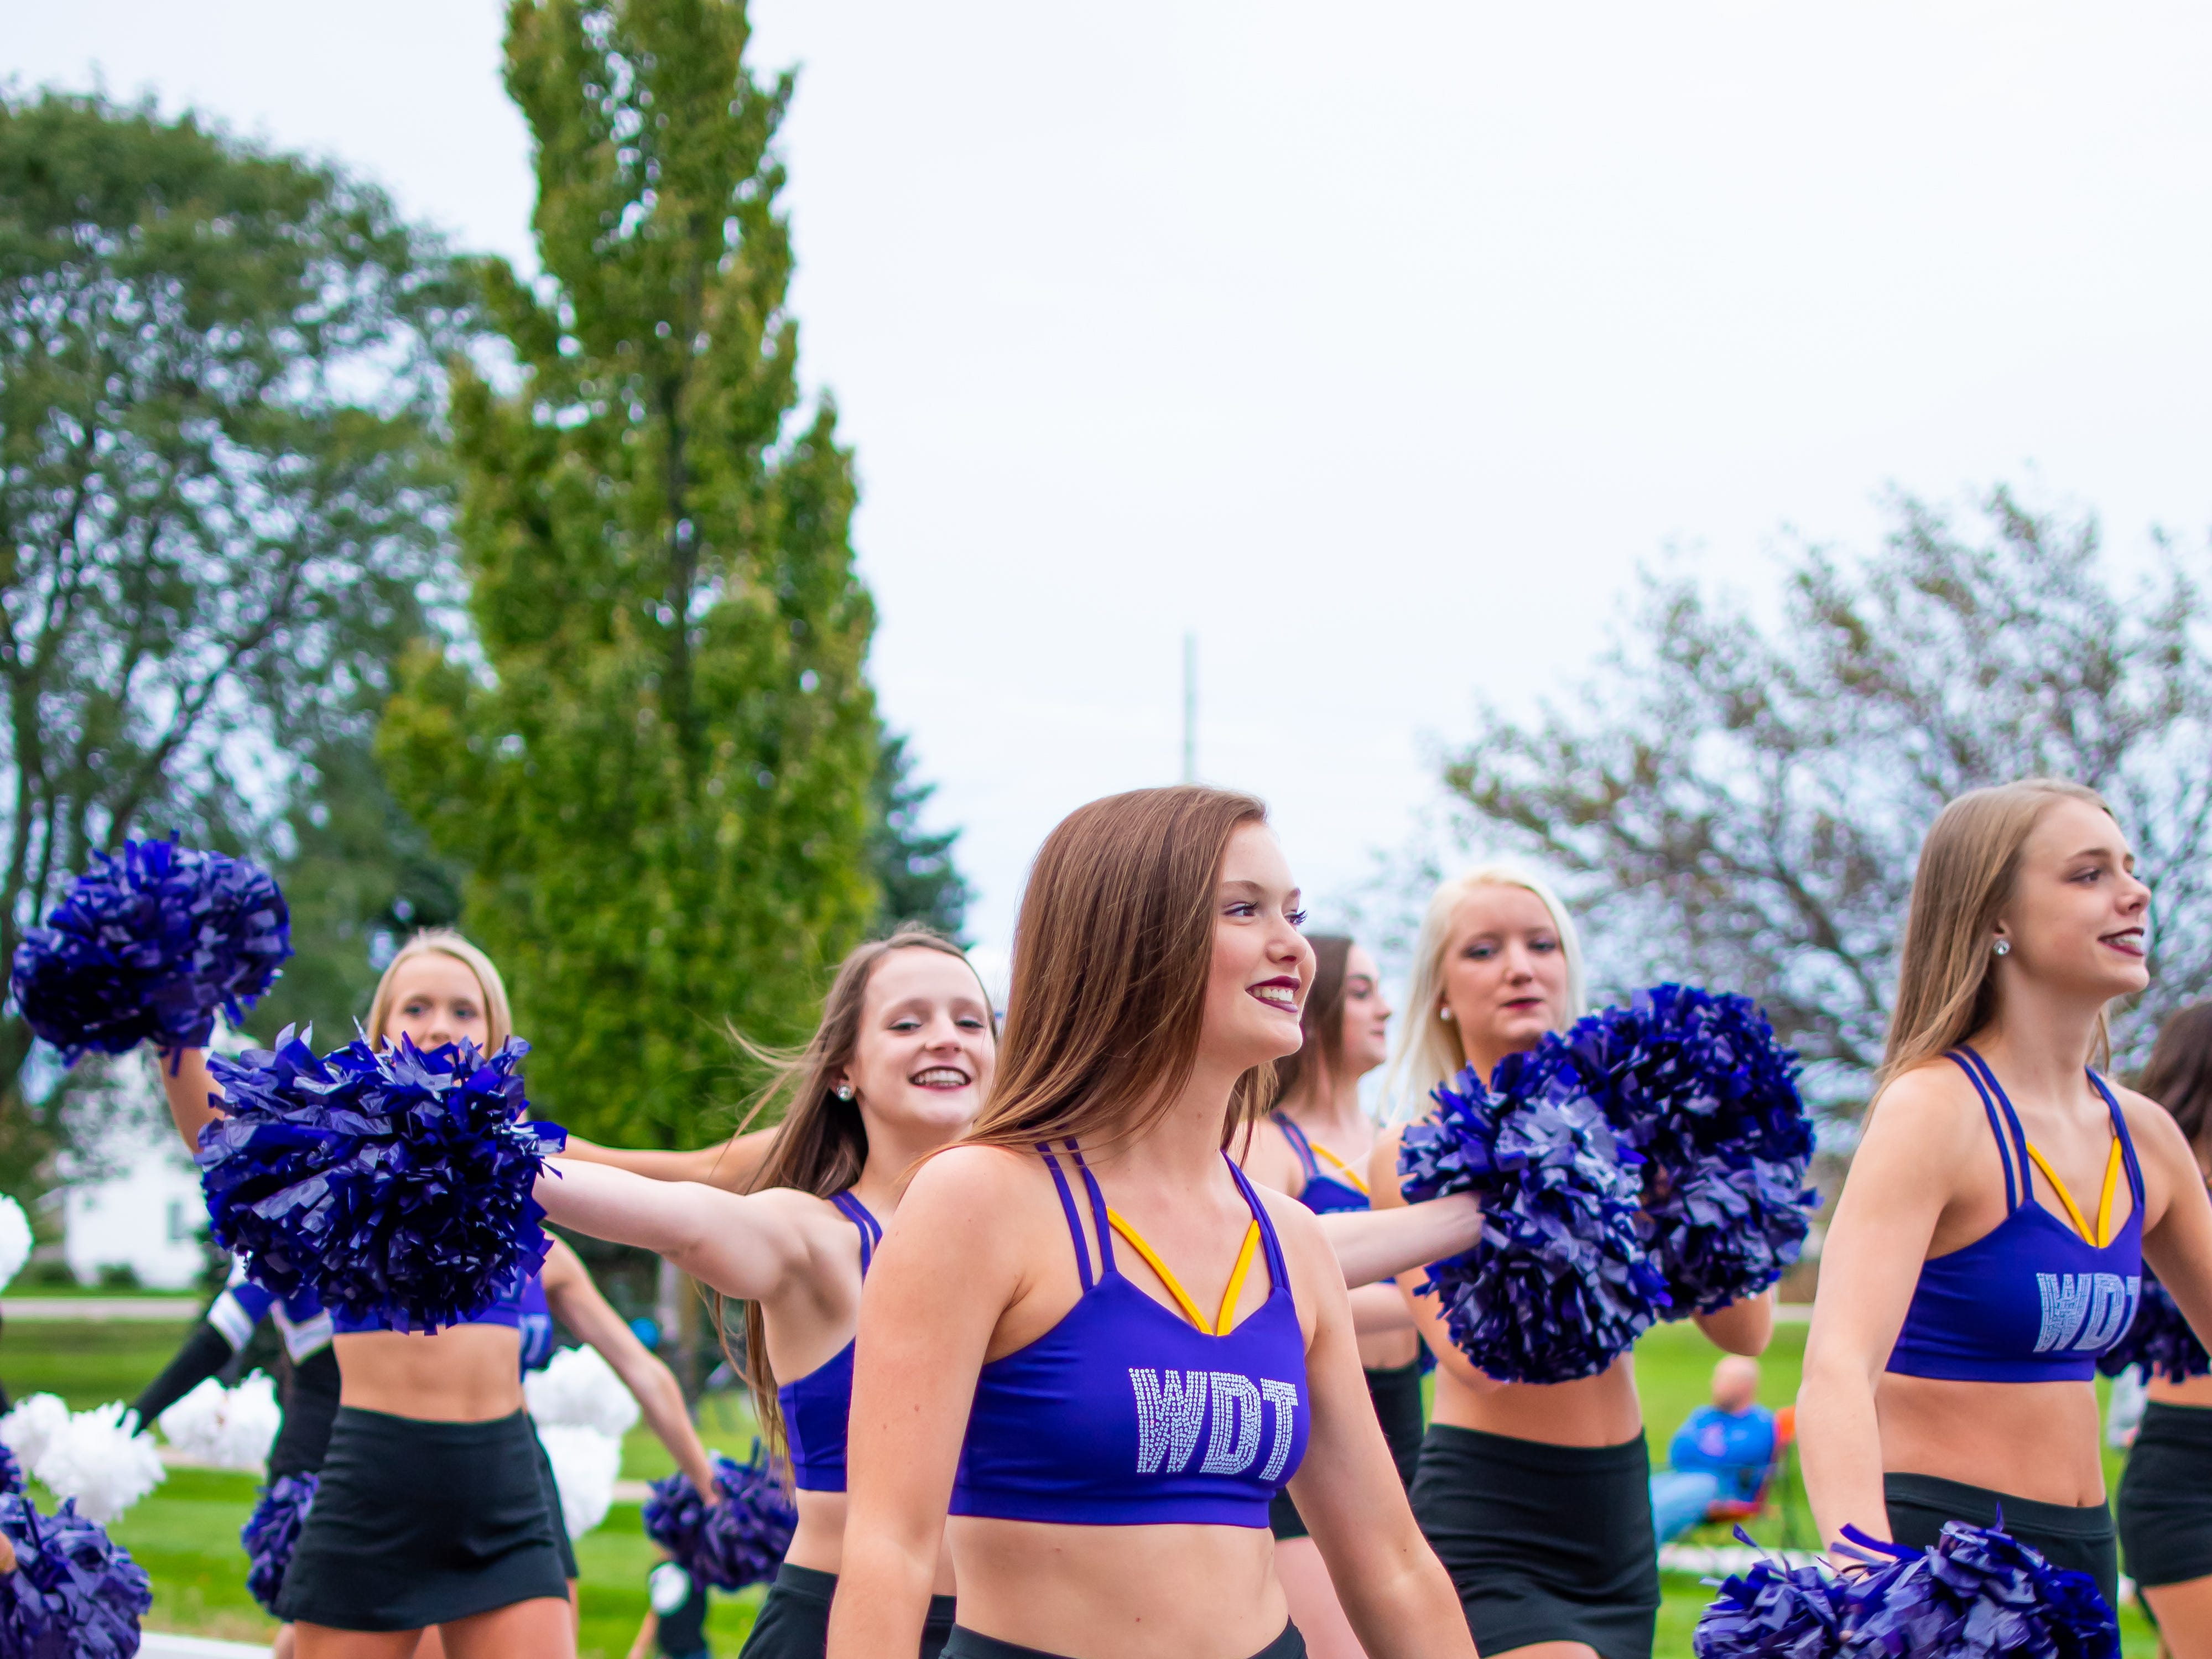 The Waukee high school dance team doesn't miss a beat at the Waukee Homecoming Parade on Thursday, September 27, 2018 in Waukee.